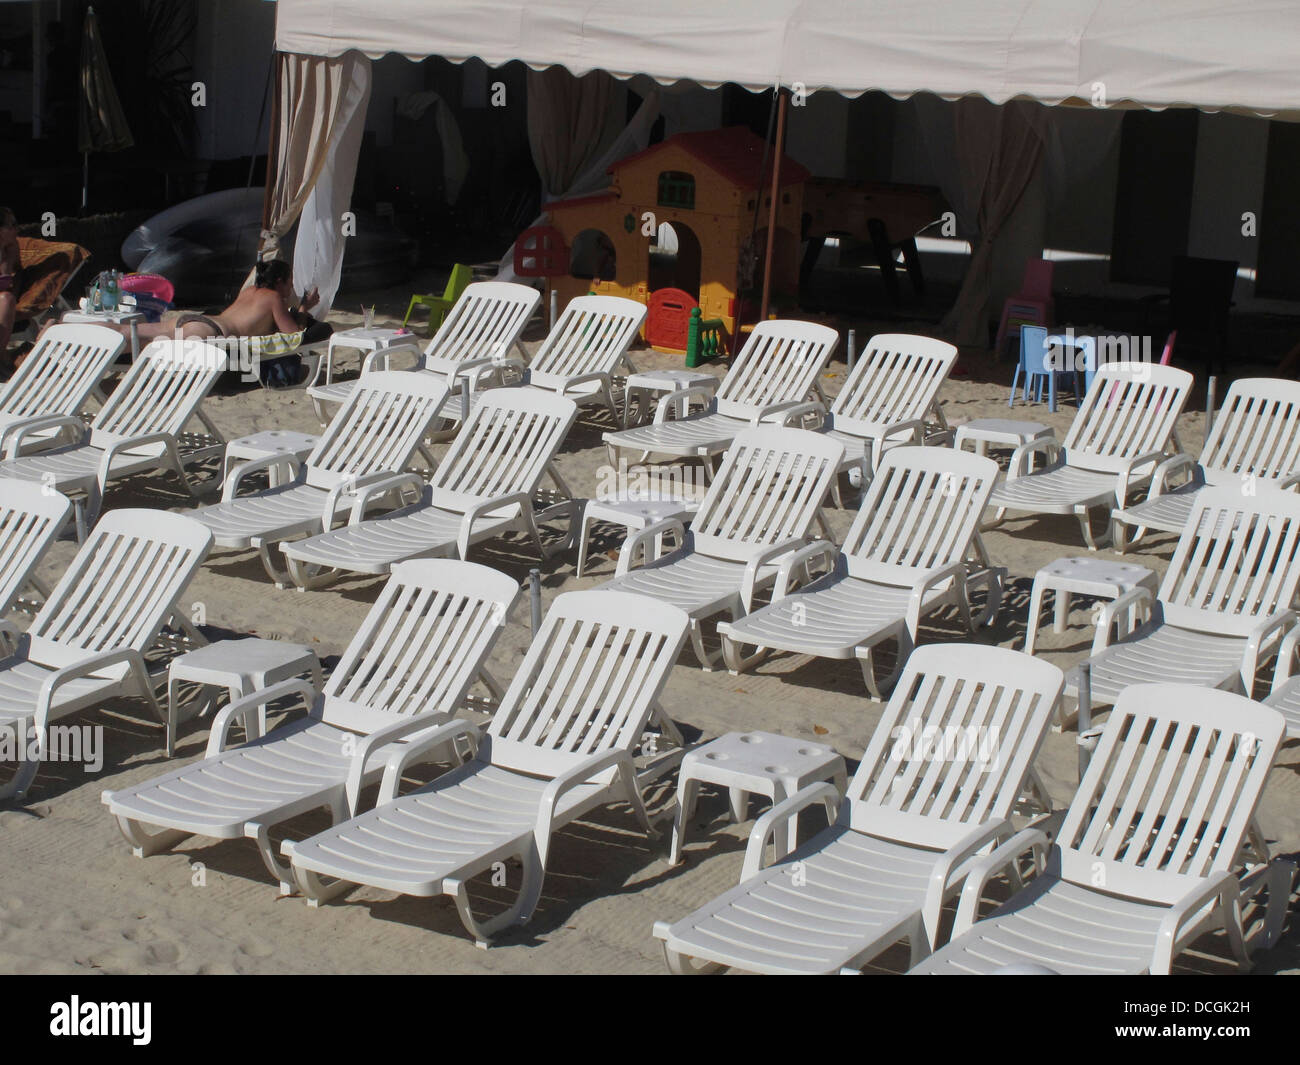 Sun lounges on a private beach in Juan-les-pins - Stock Image